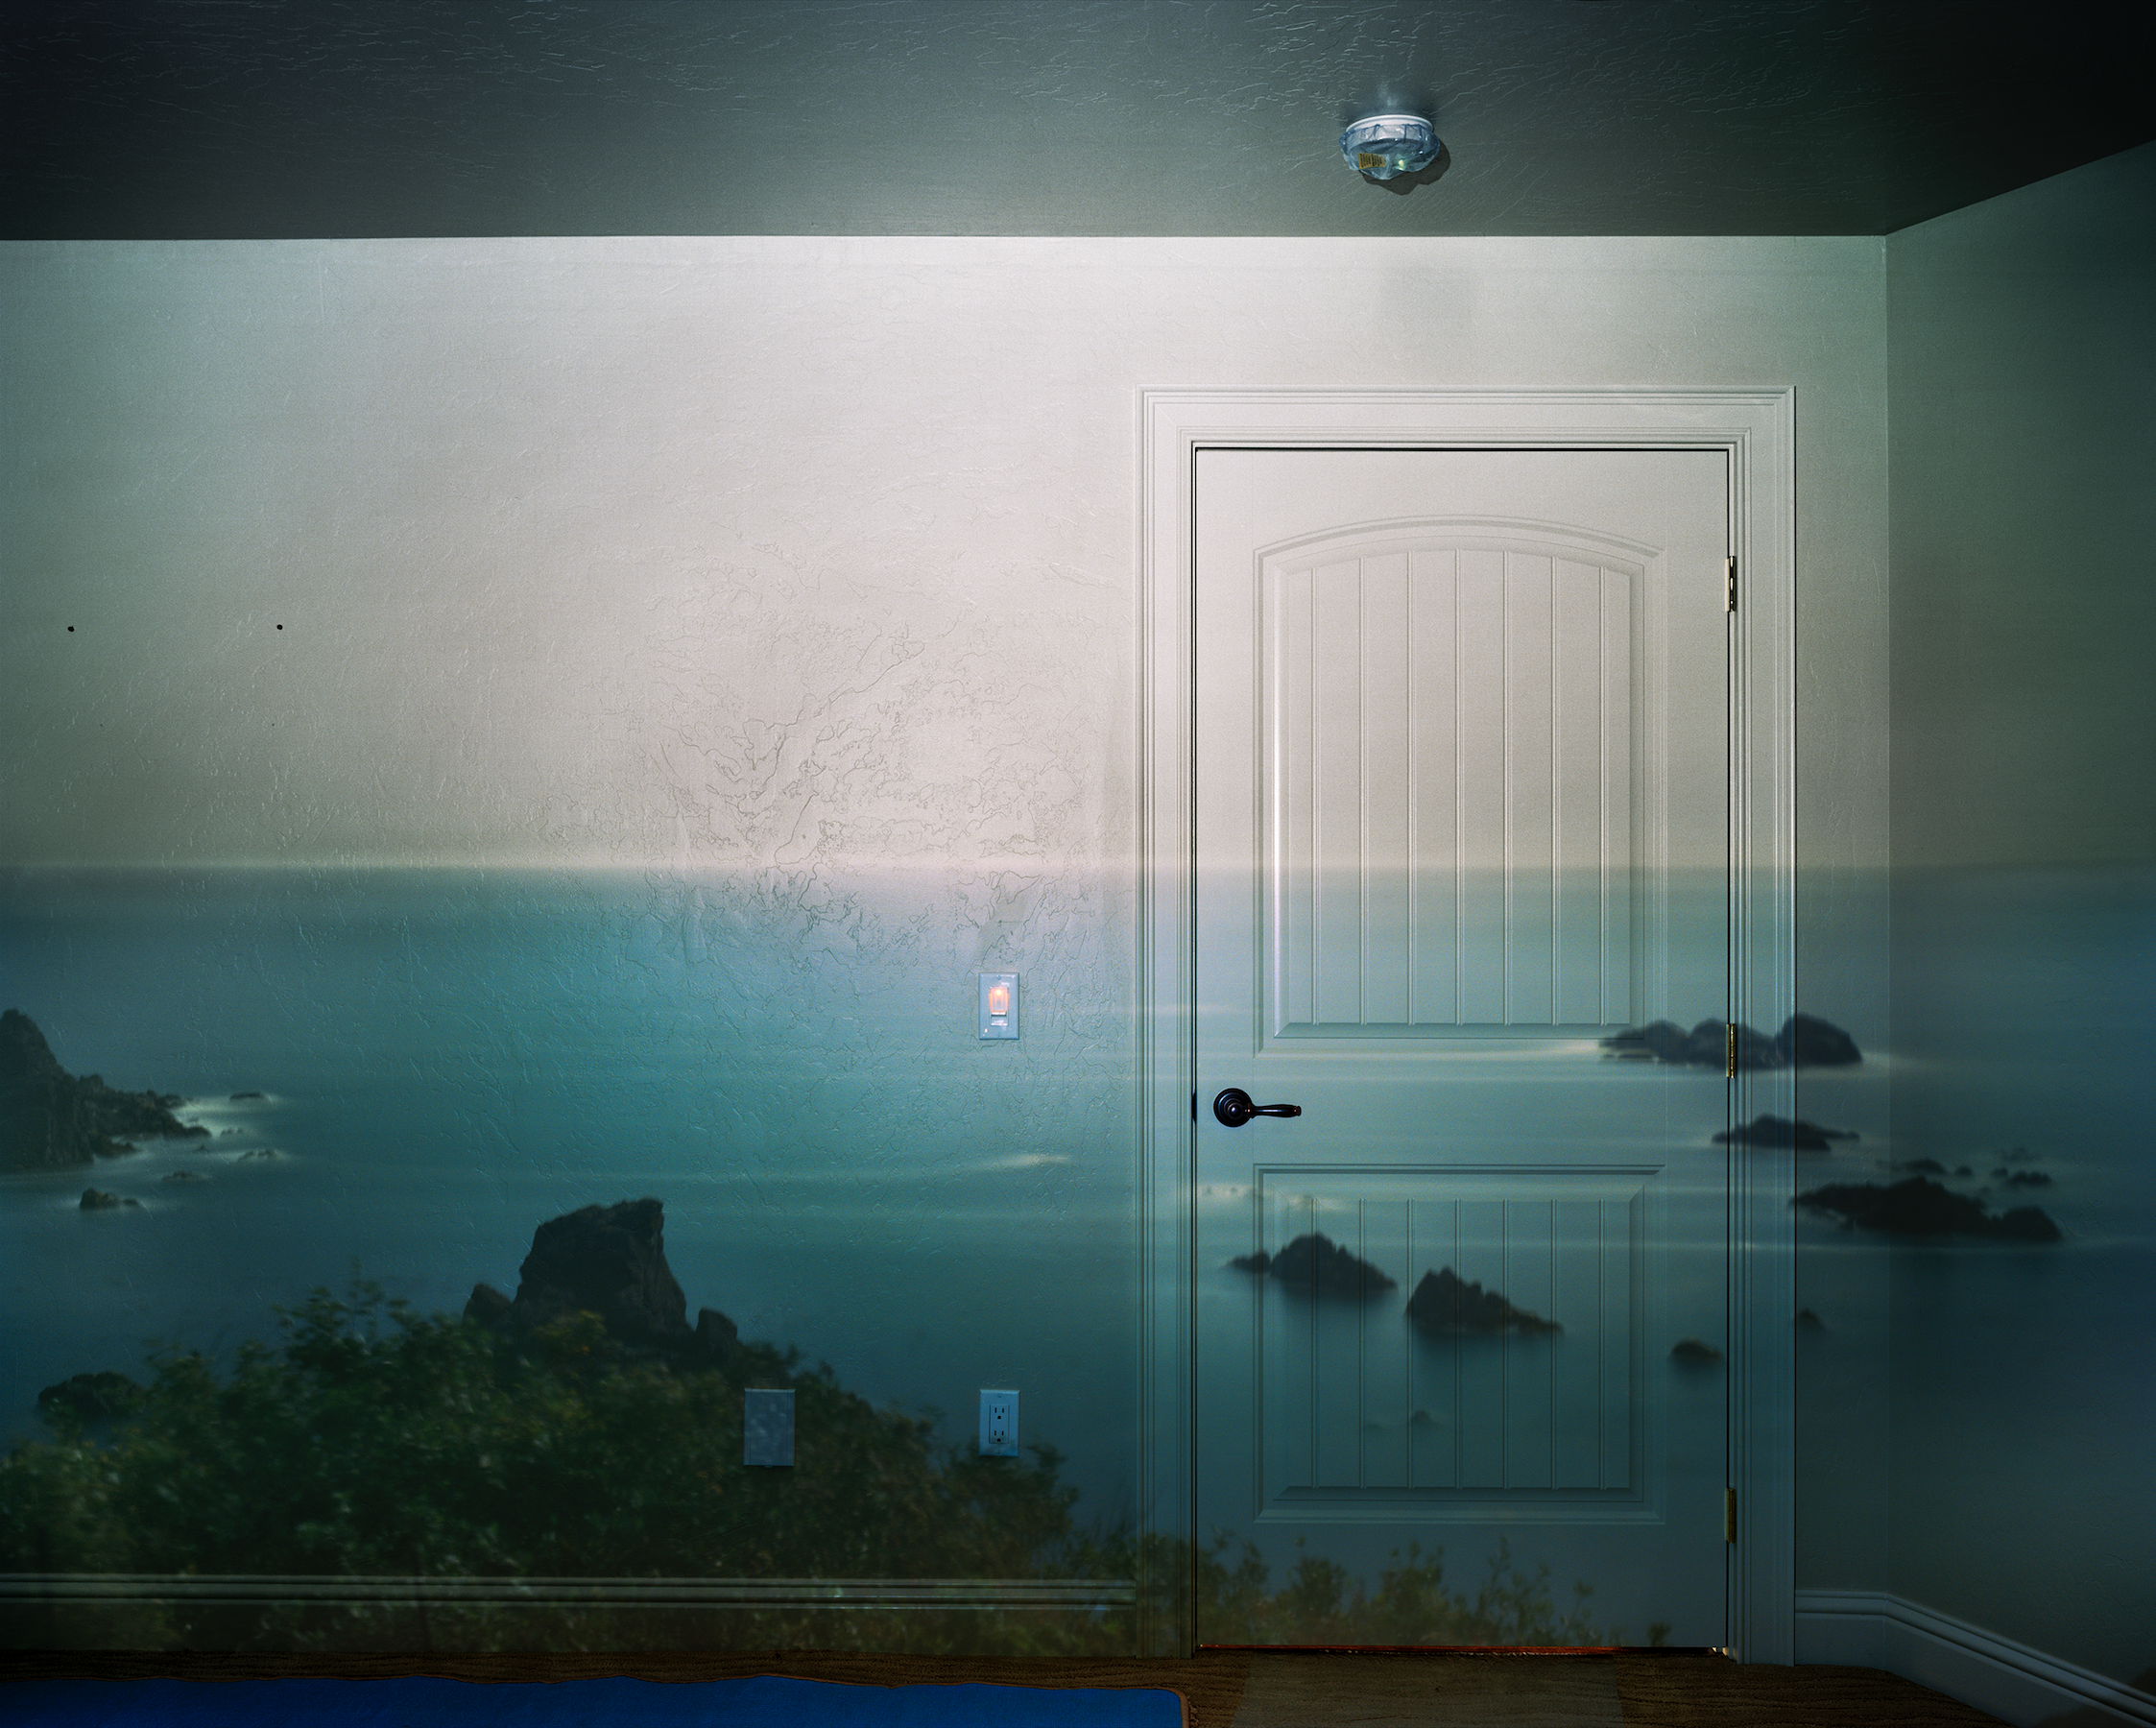 Abelard Morell,  Camera Obscura: Afternoon Light On The Pacific Ocean, Brookyngs, Oregon , July 13th, 2009.